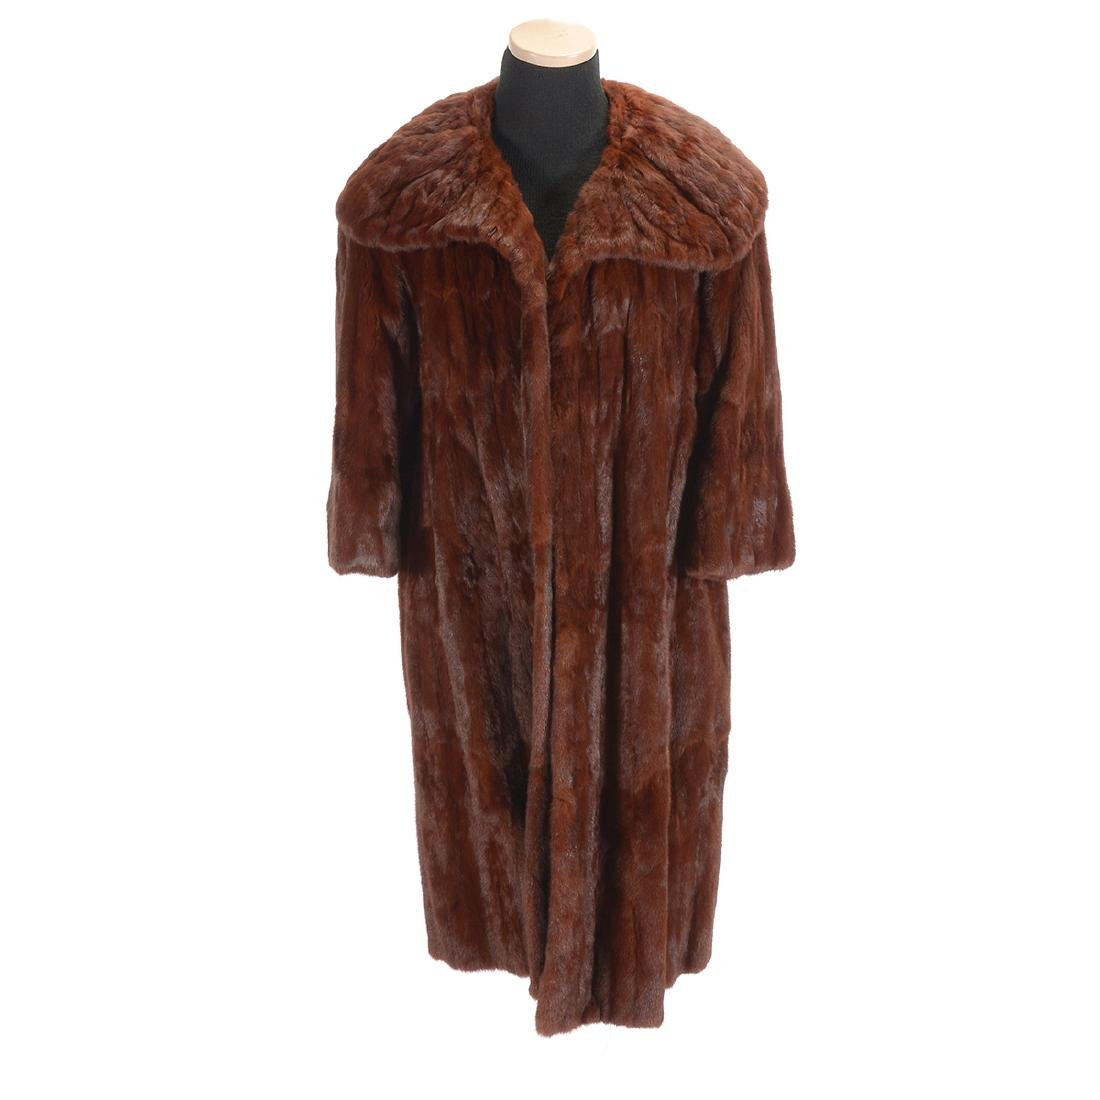 Full Length Sable Coat with Wide 'Lapel' Collar